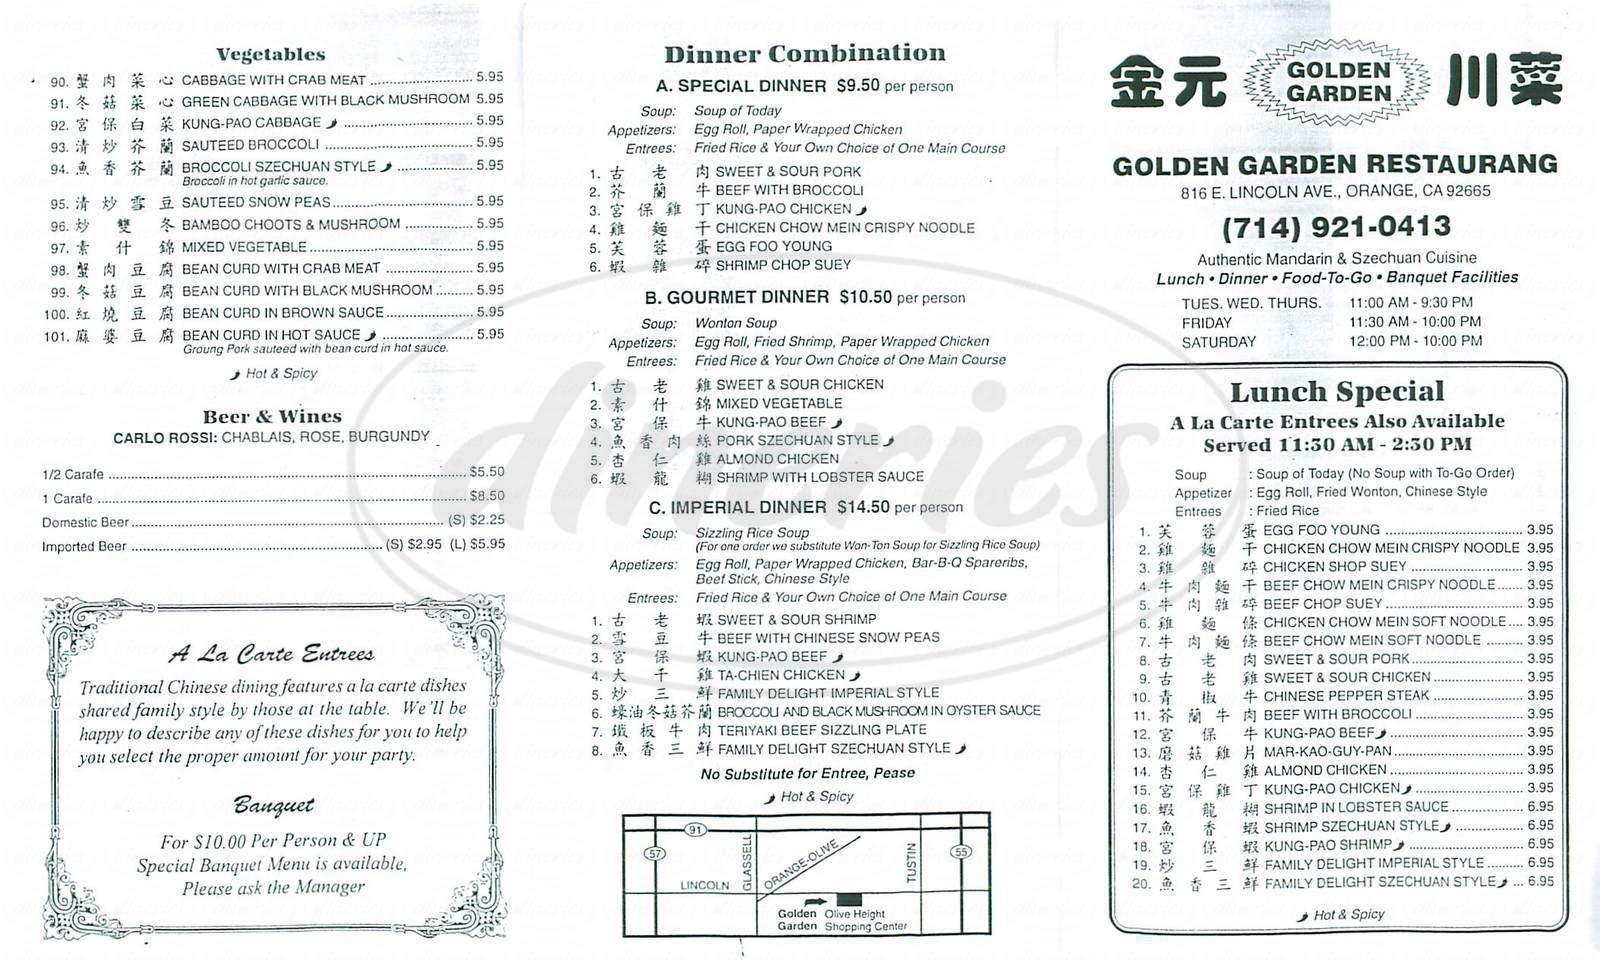 menu for Golden Garden Restaurant